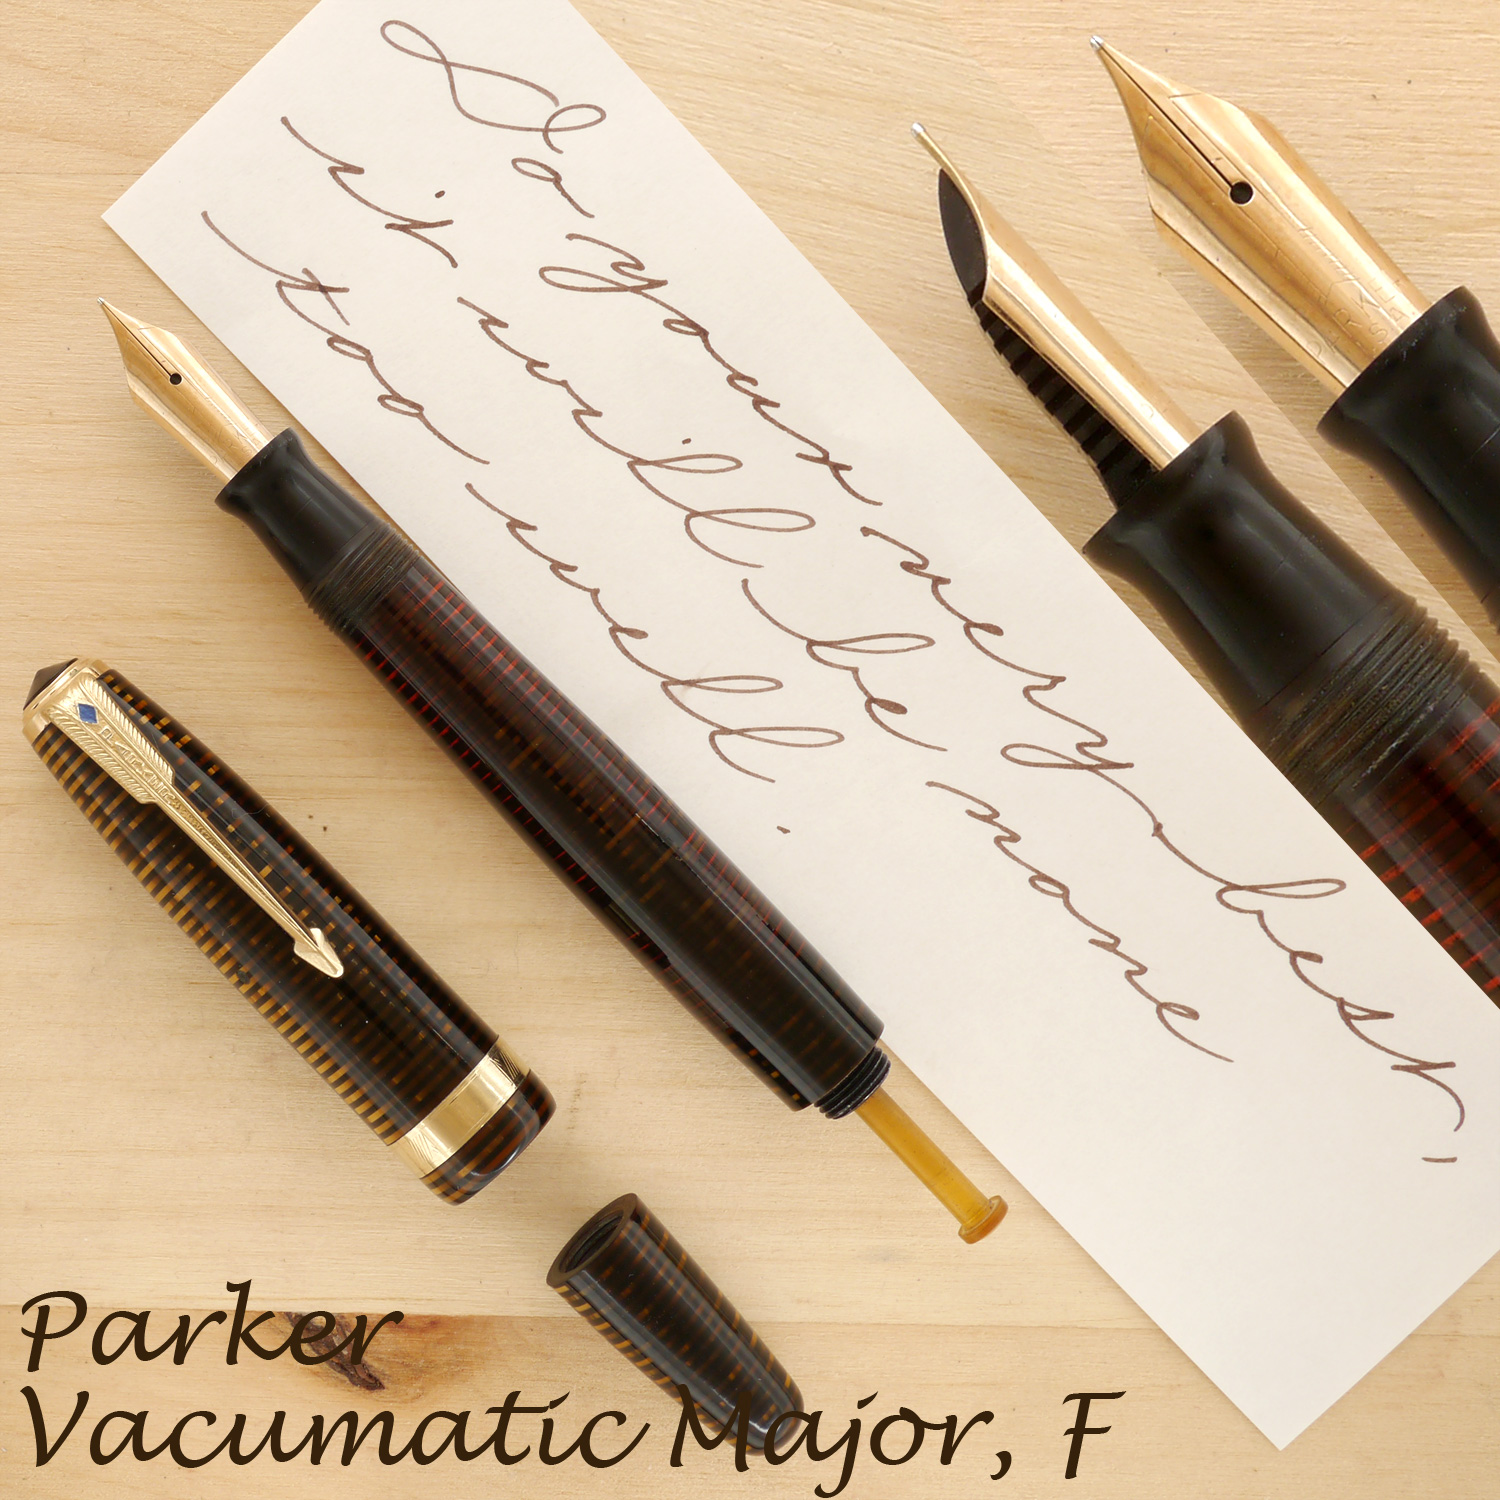 Parker Vacumatic Major, Golden Pearl, F, uncapped, with the plunger showing